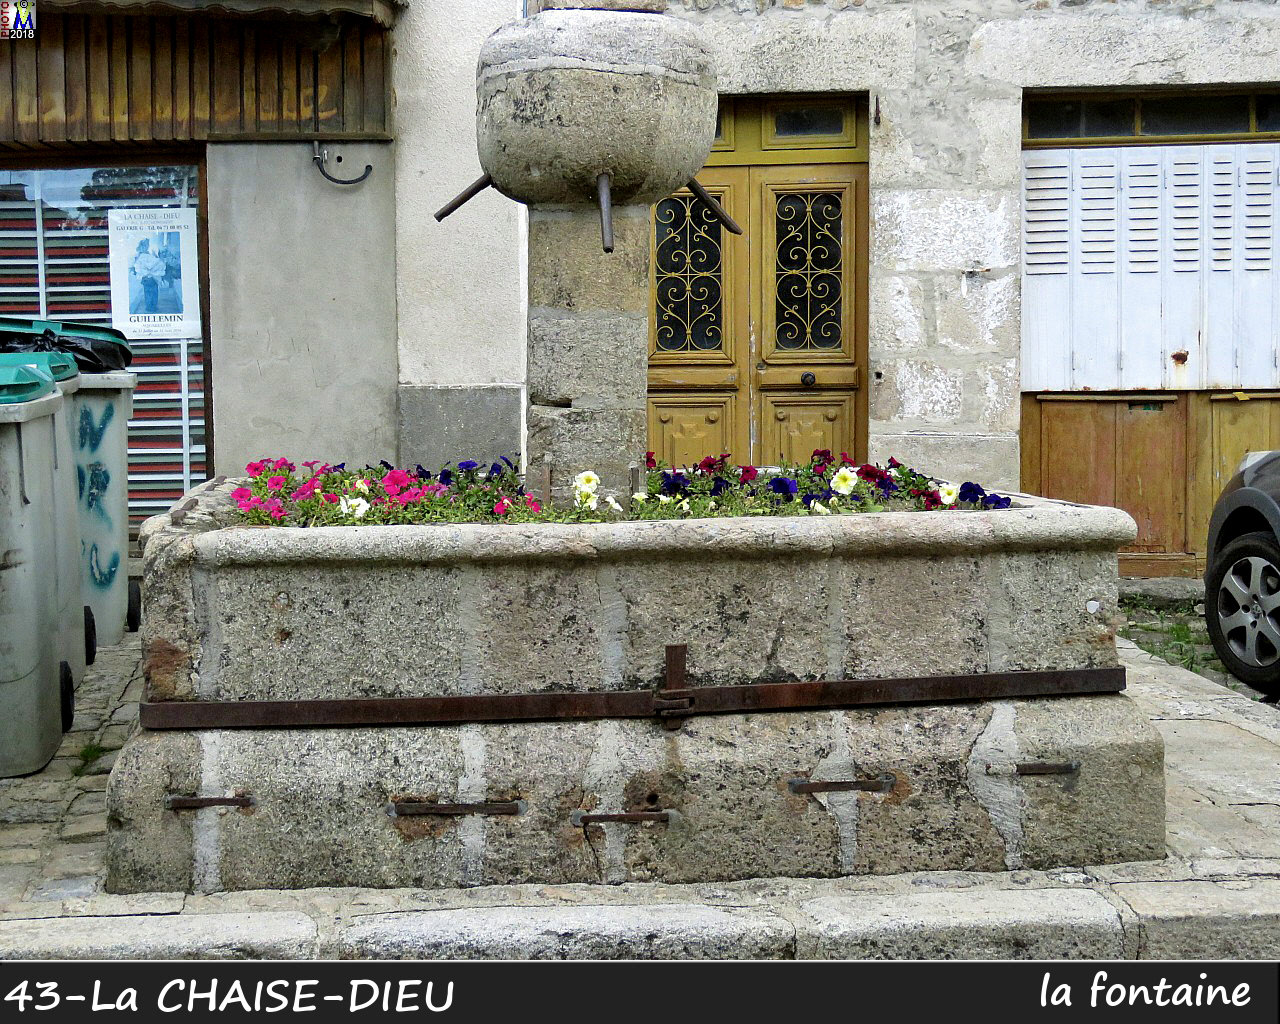 43CHAISE-DIEU_fontaine_110.jpg